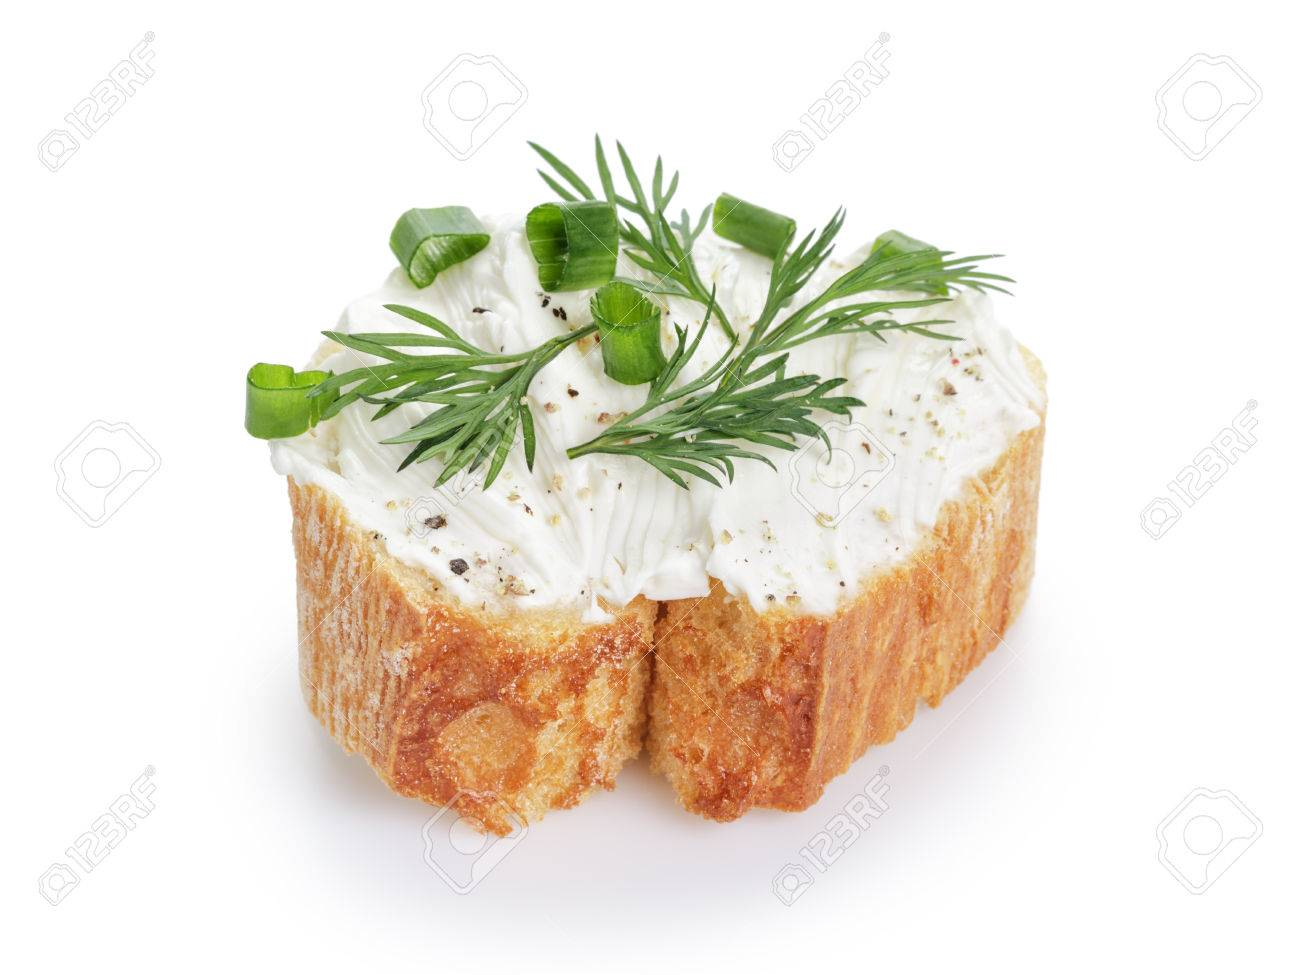 crunchy baguette slice with cream cheese and herbs isolated - 39104994